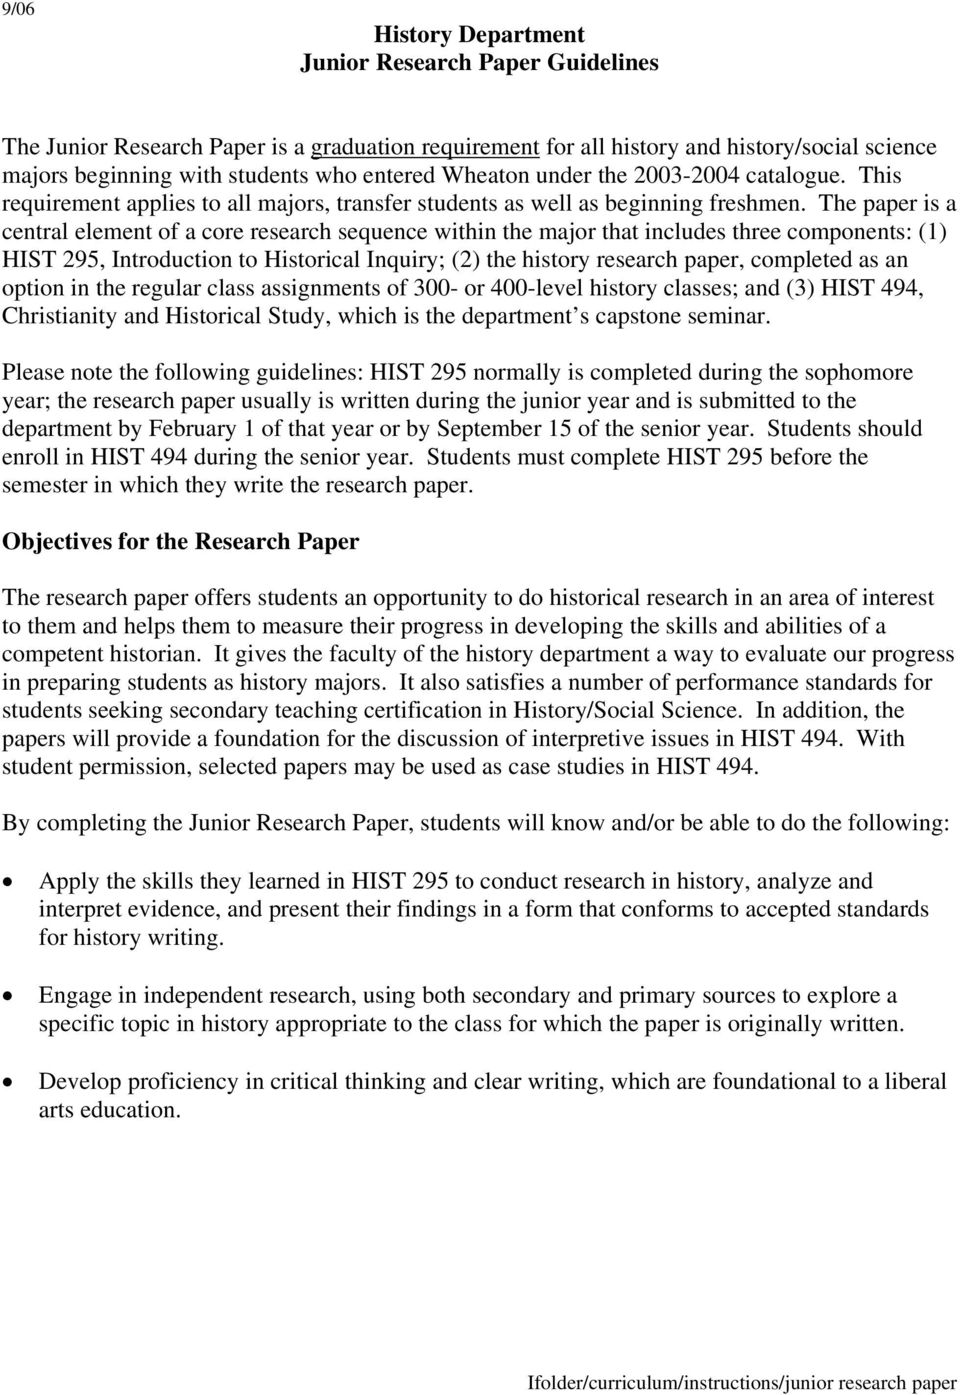 research papers examples